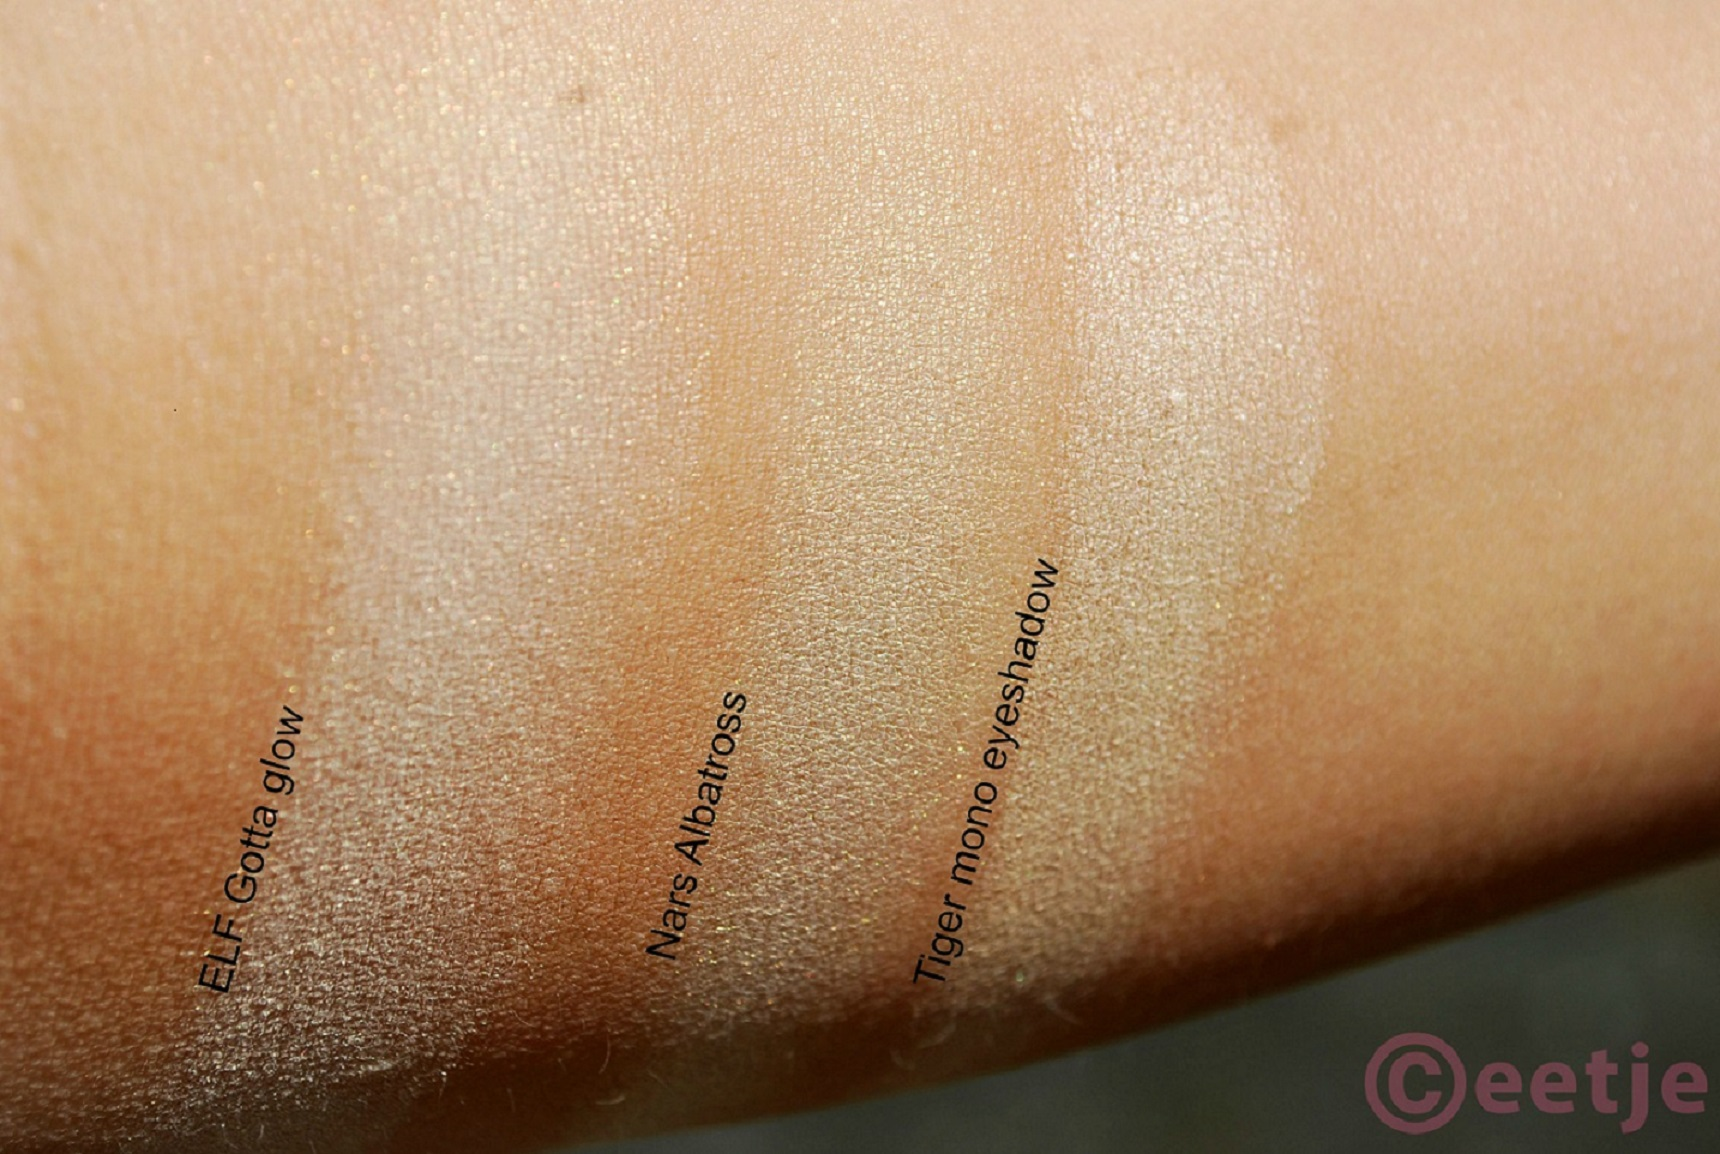 Swatch Nars Albatross vs ELF gotta glow